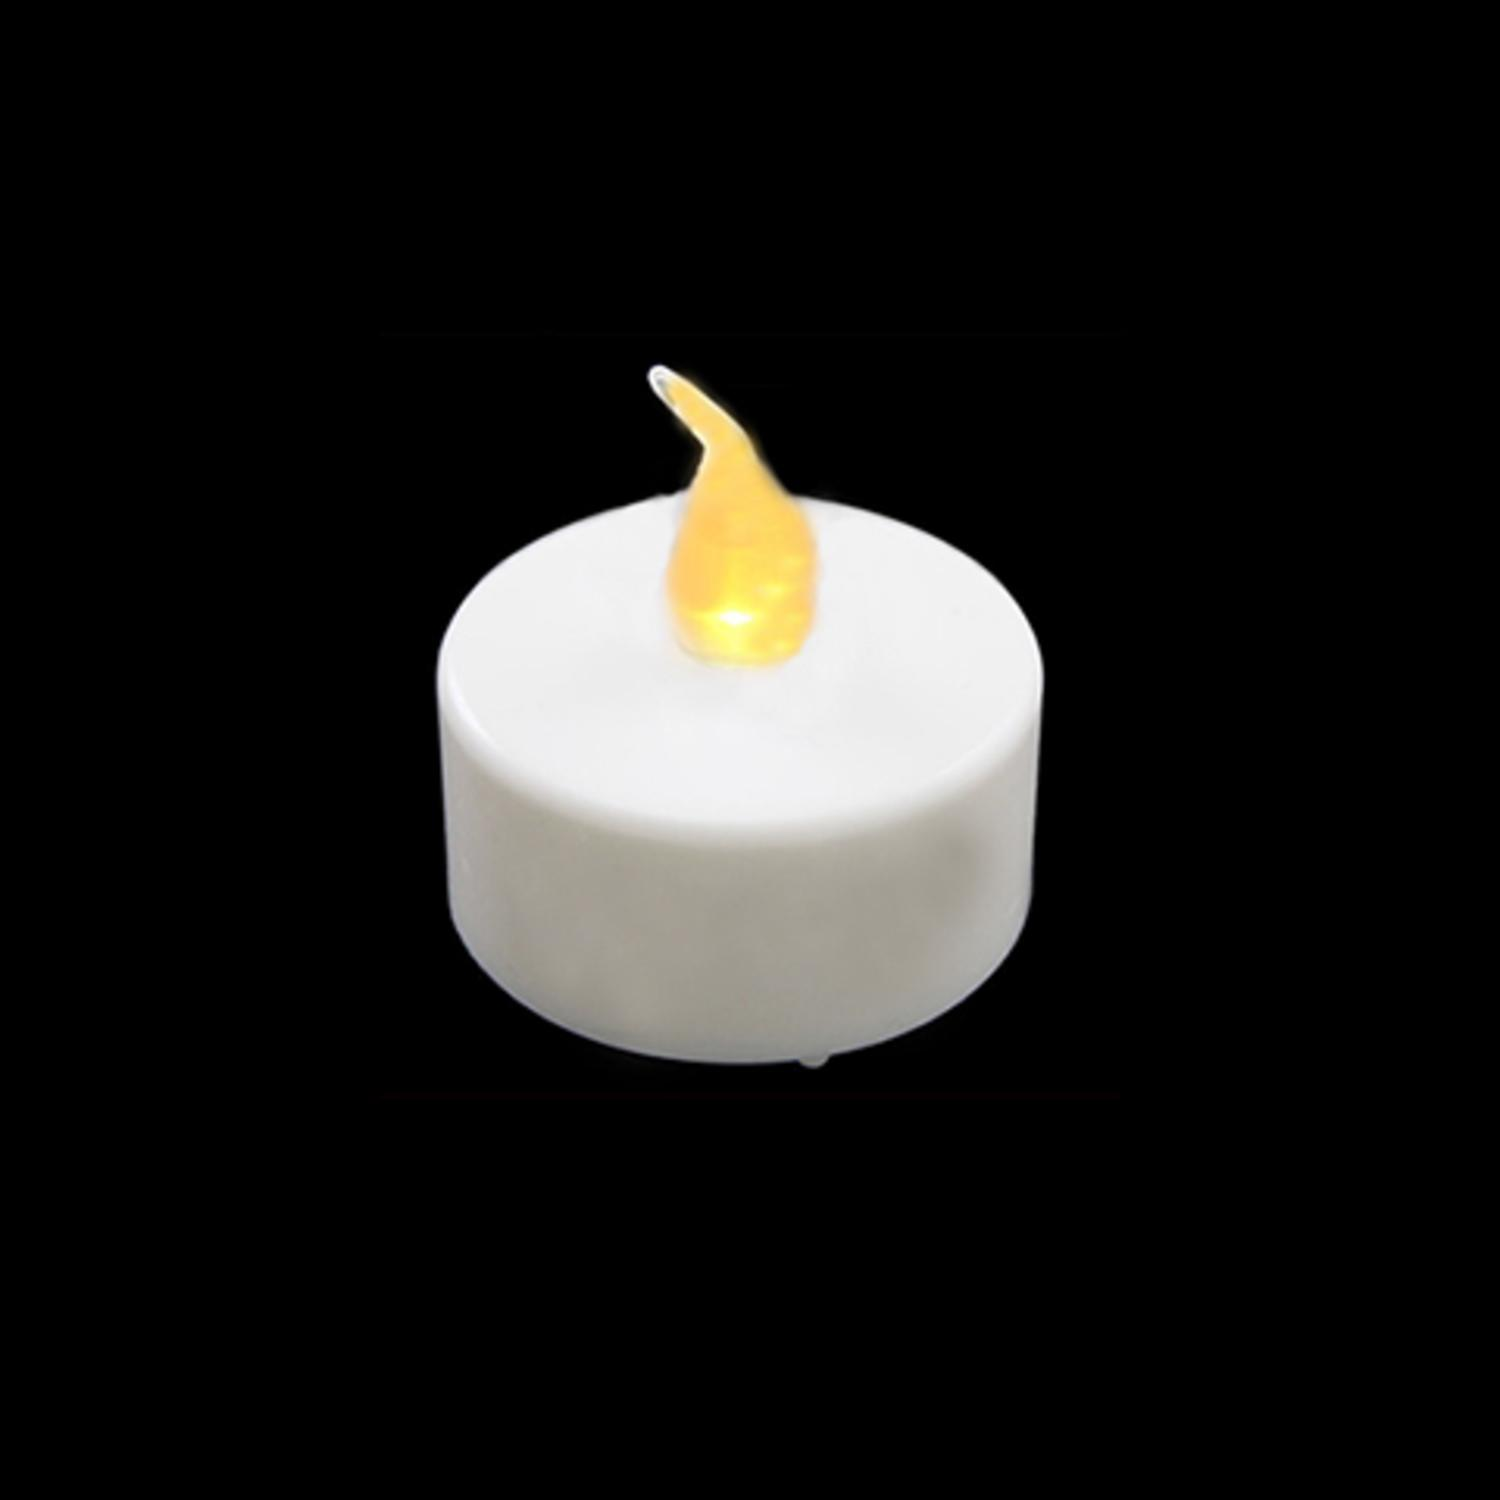 Pack of 4 LED Lighted Battery Operated Flicker Flame White Christmas Tea Light